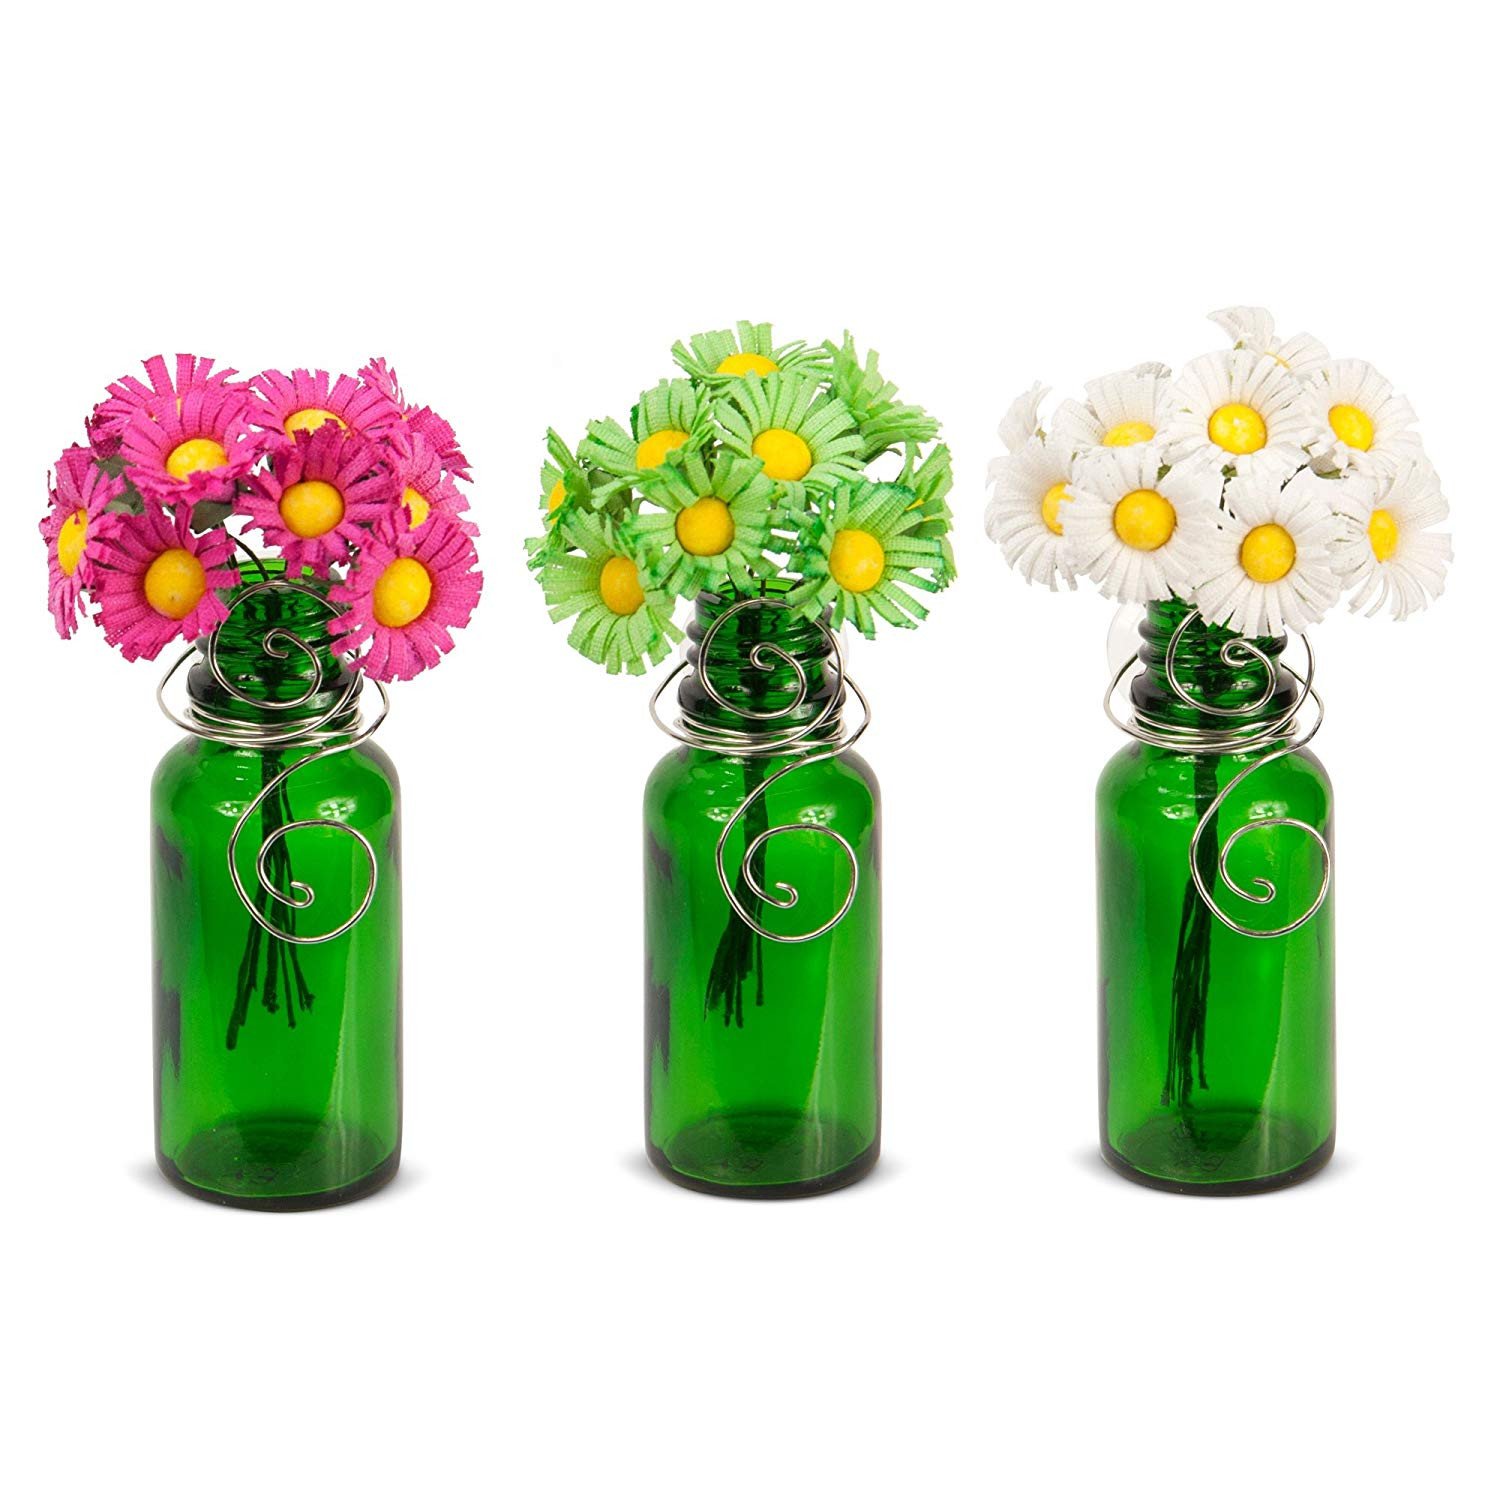 4 Inch Bud Vase Of Amazon Com Vazzini Mini Vase Bouquet Suction Cup Bud Bottle Throughout Amazon Com Vazzini Mini Vase Bouquet Suction Cup Bud Bottle Holder with Flowers Decorative for Window Mirrors Tile Wedding Party Favor Get Well